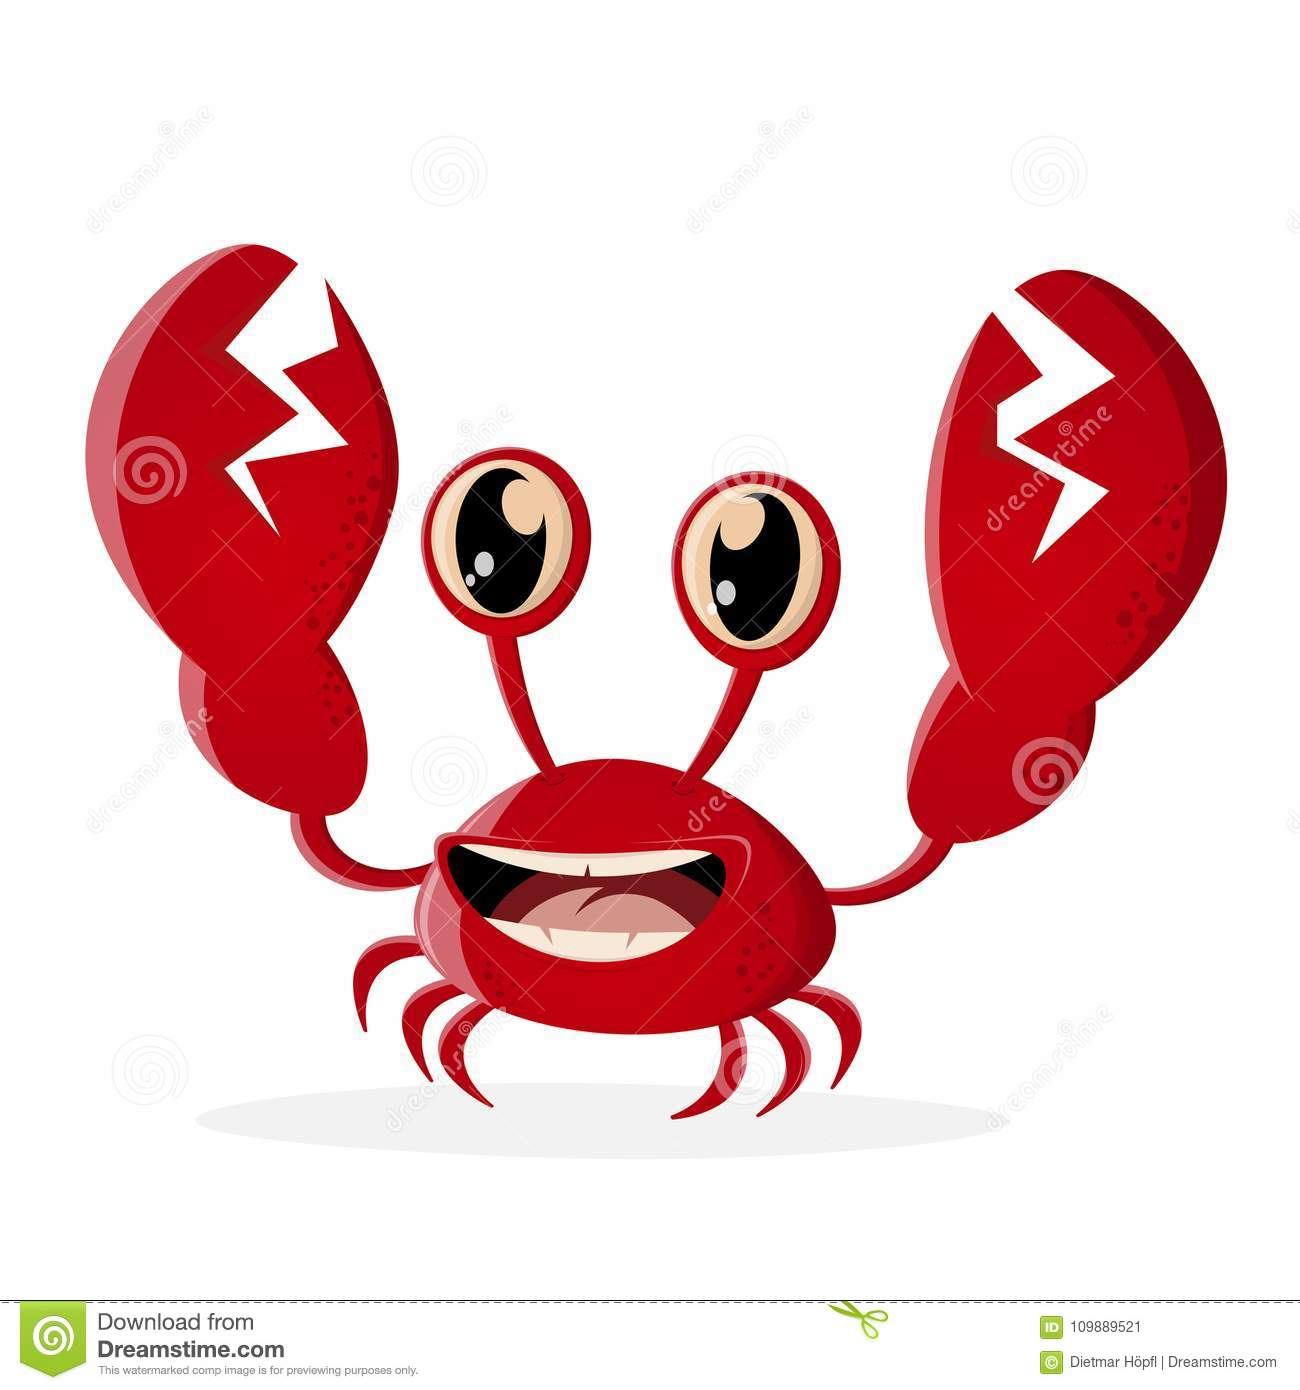 Funny crab clipart stock vector. Illustration of retro.